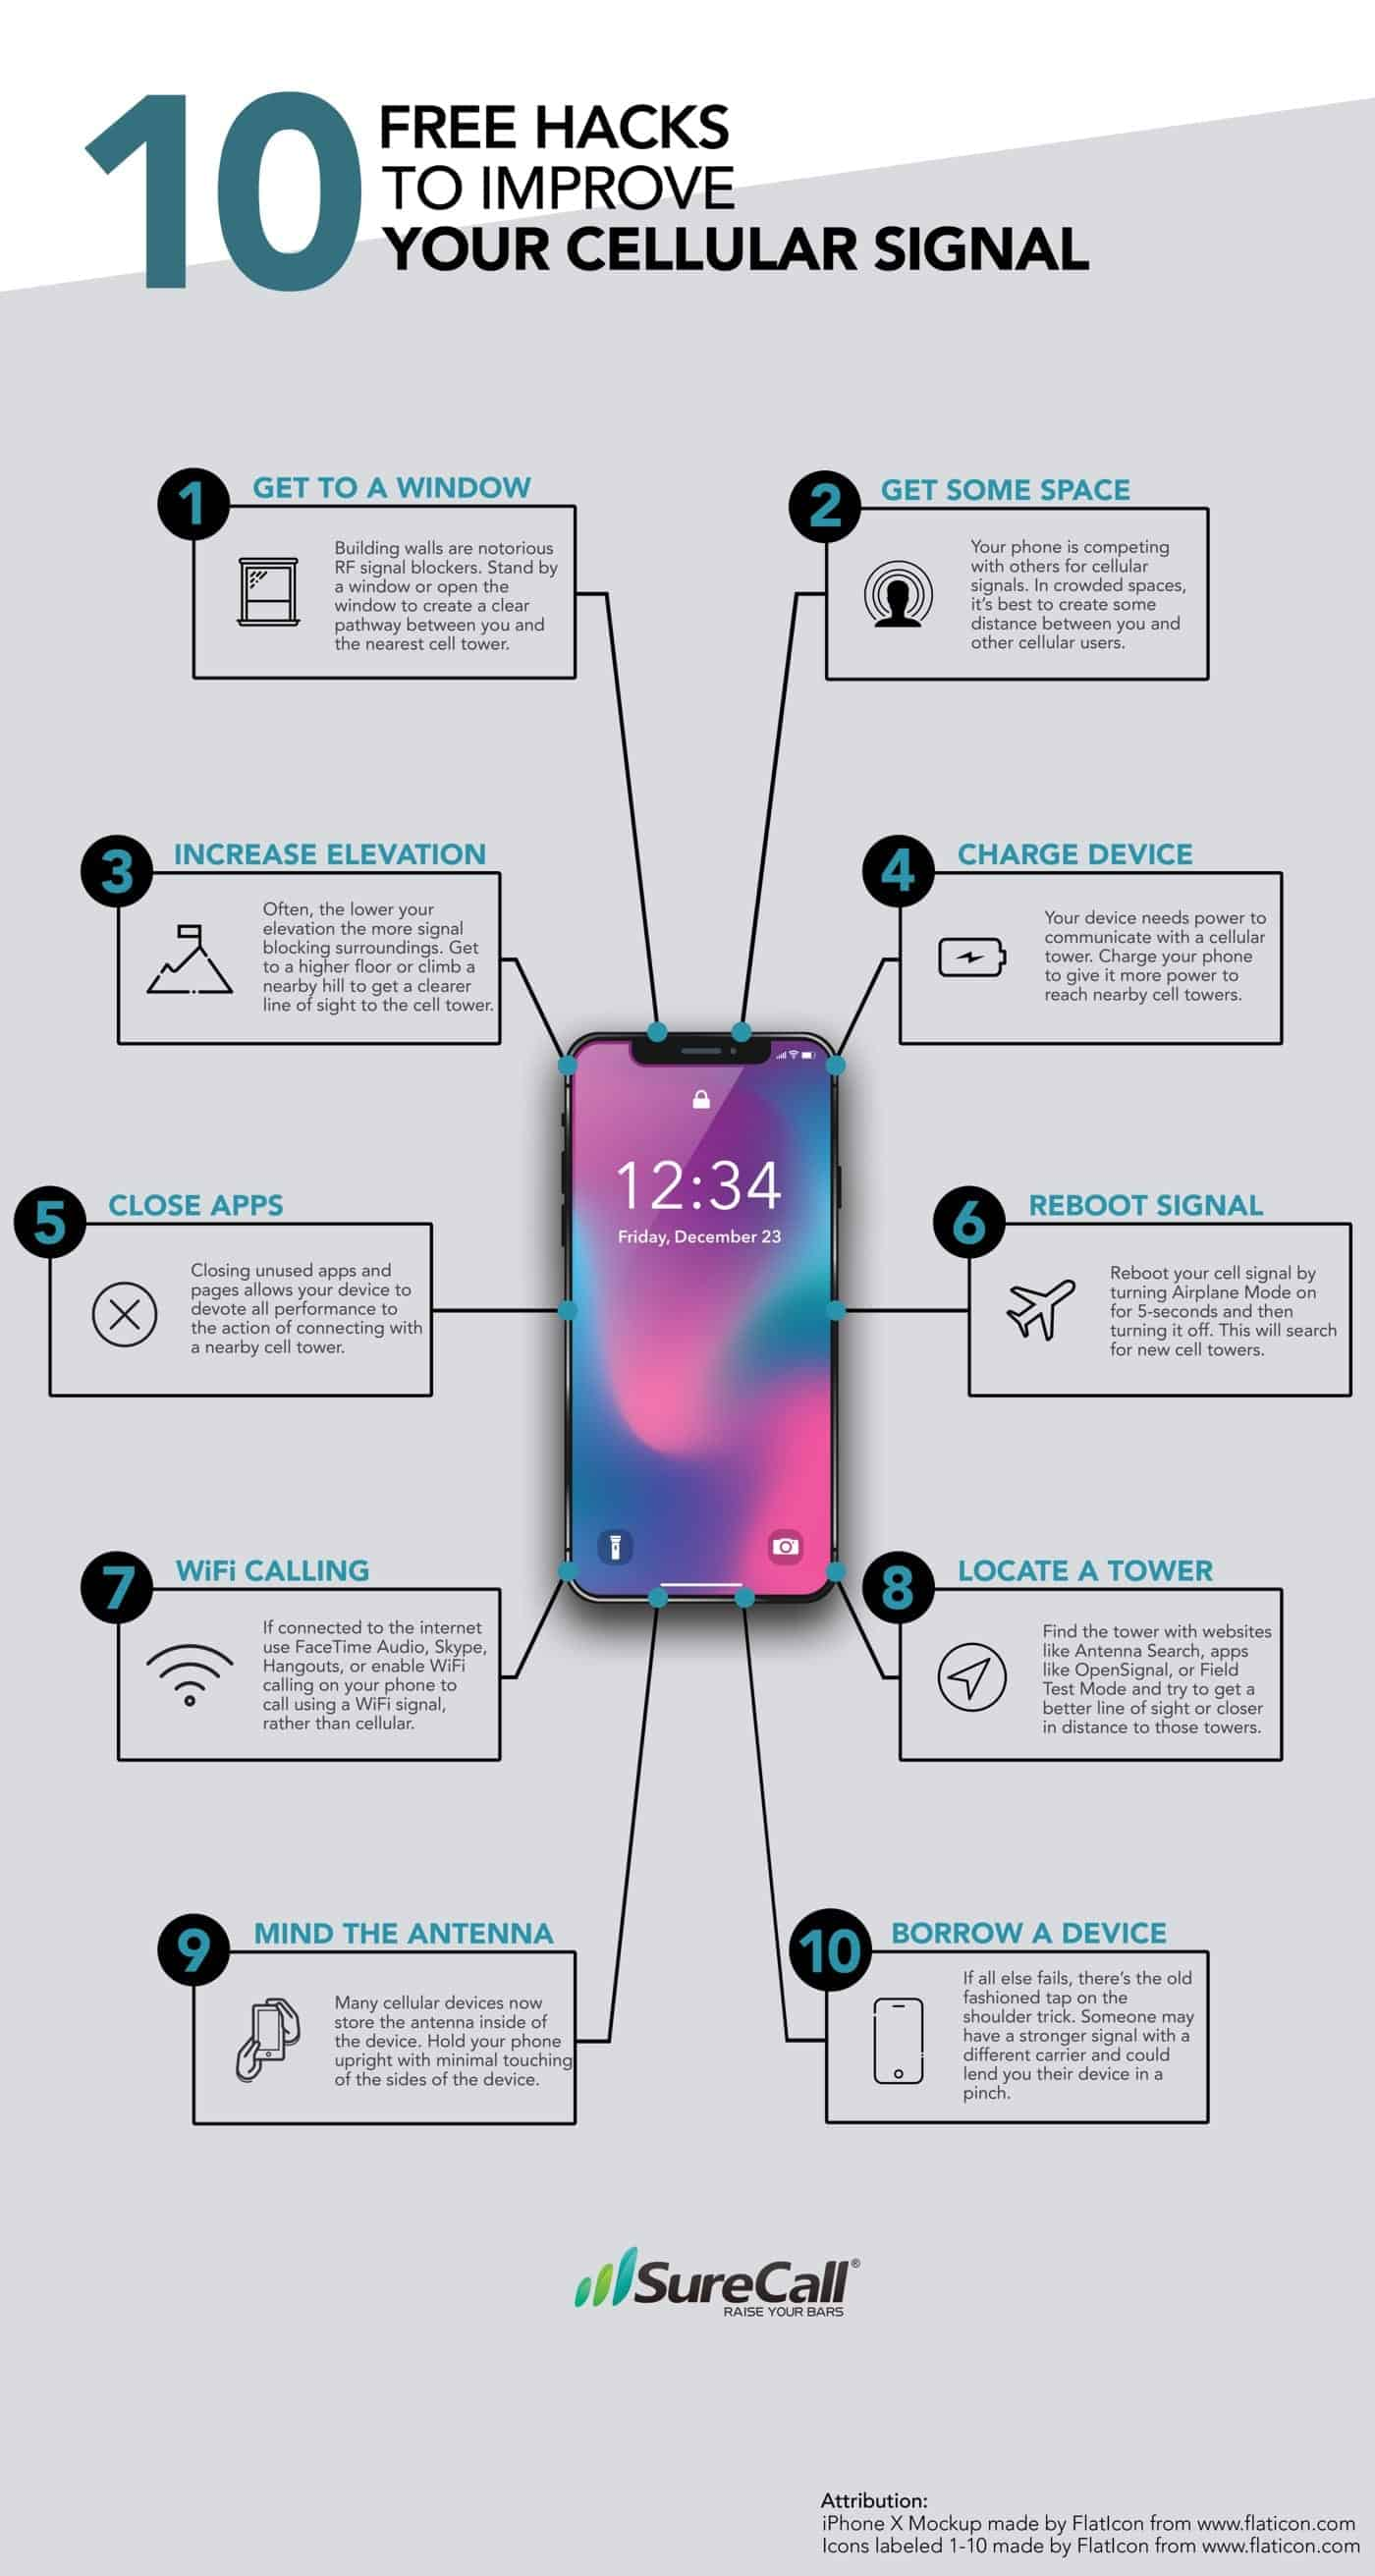 SureCall Infographic Shares Pro-Tips To Boost Cell Signal